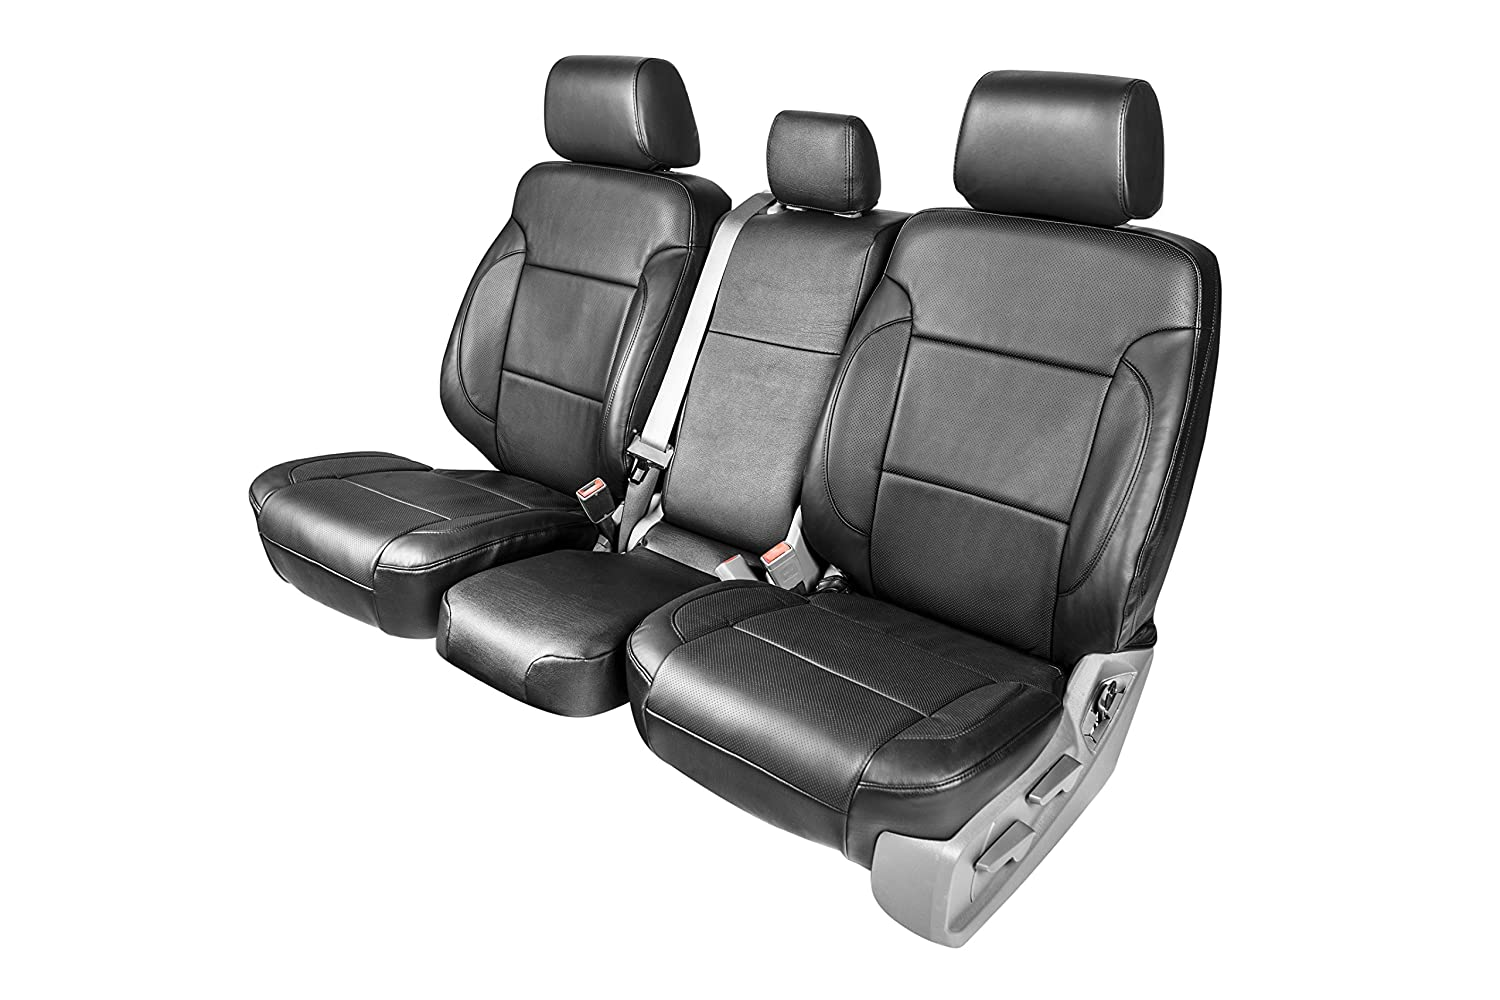 Clazzio 220711blk Black Leather Front Row Seat Cover for Toyota Tundra Double Cab